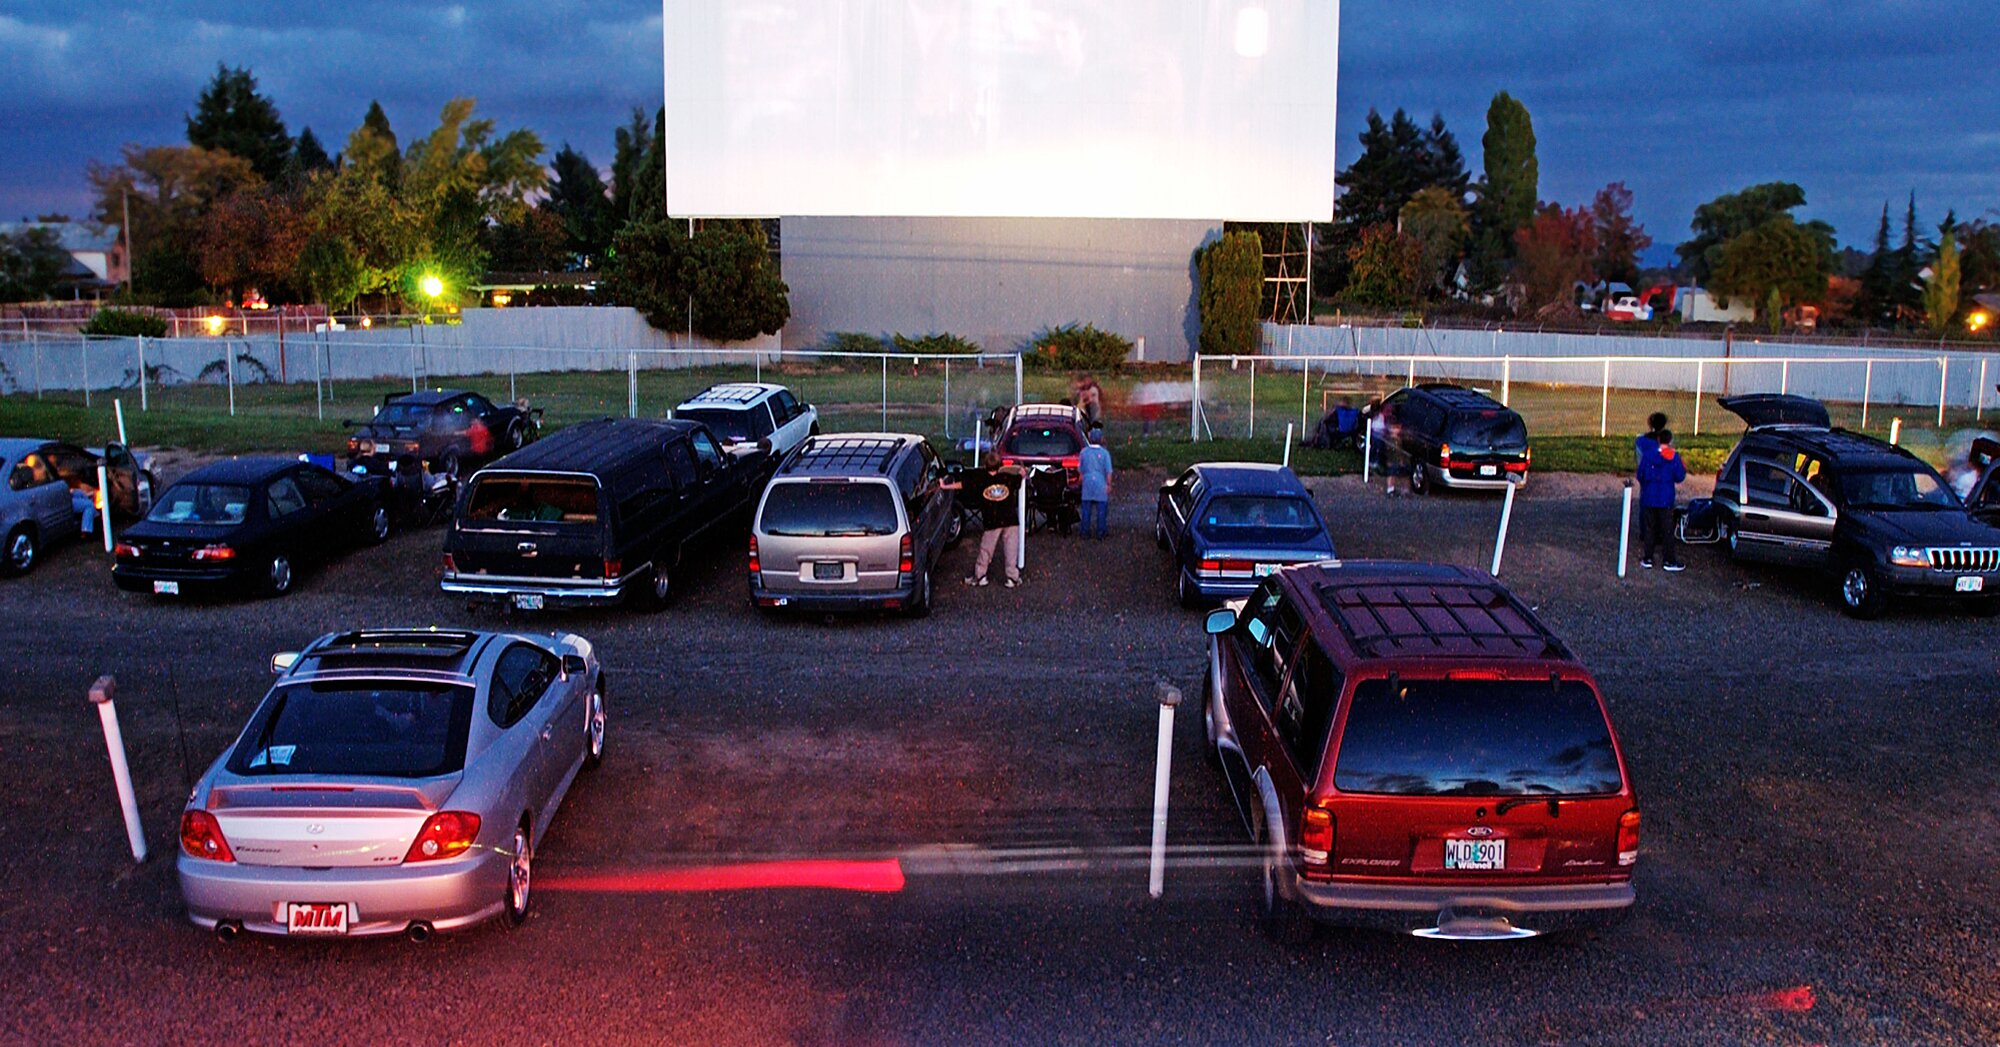 Restaurants Are Turning Their Parking Lots Into Drive-in Movie Theaters photo